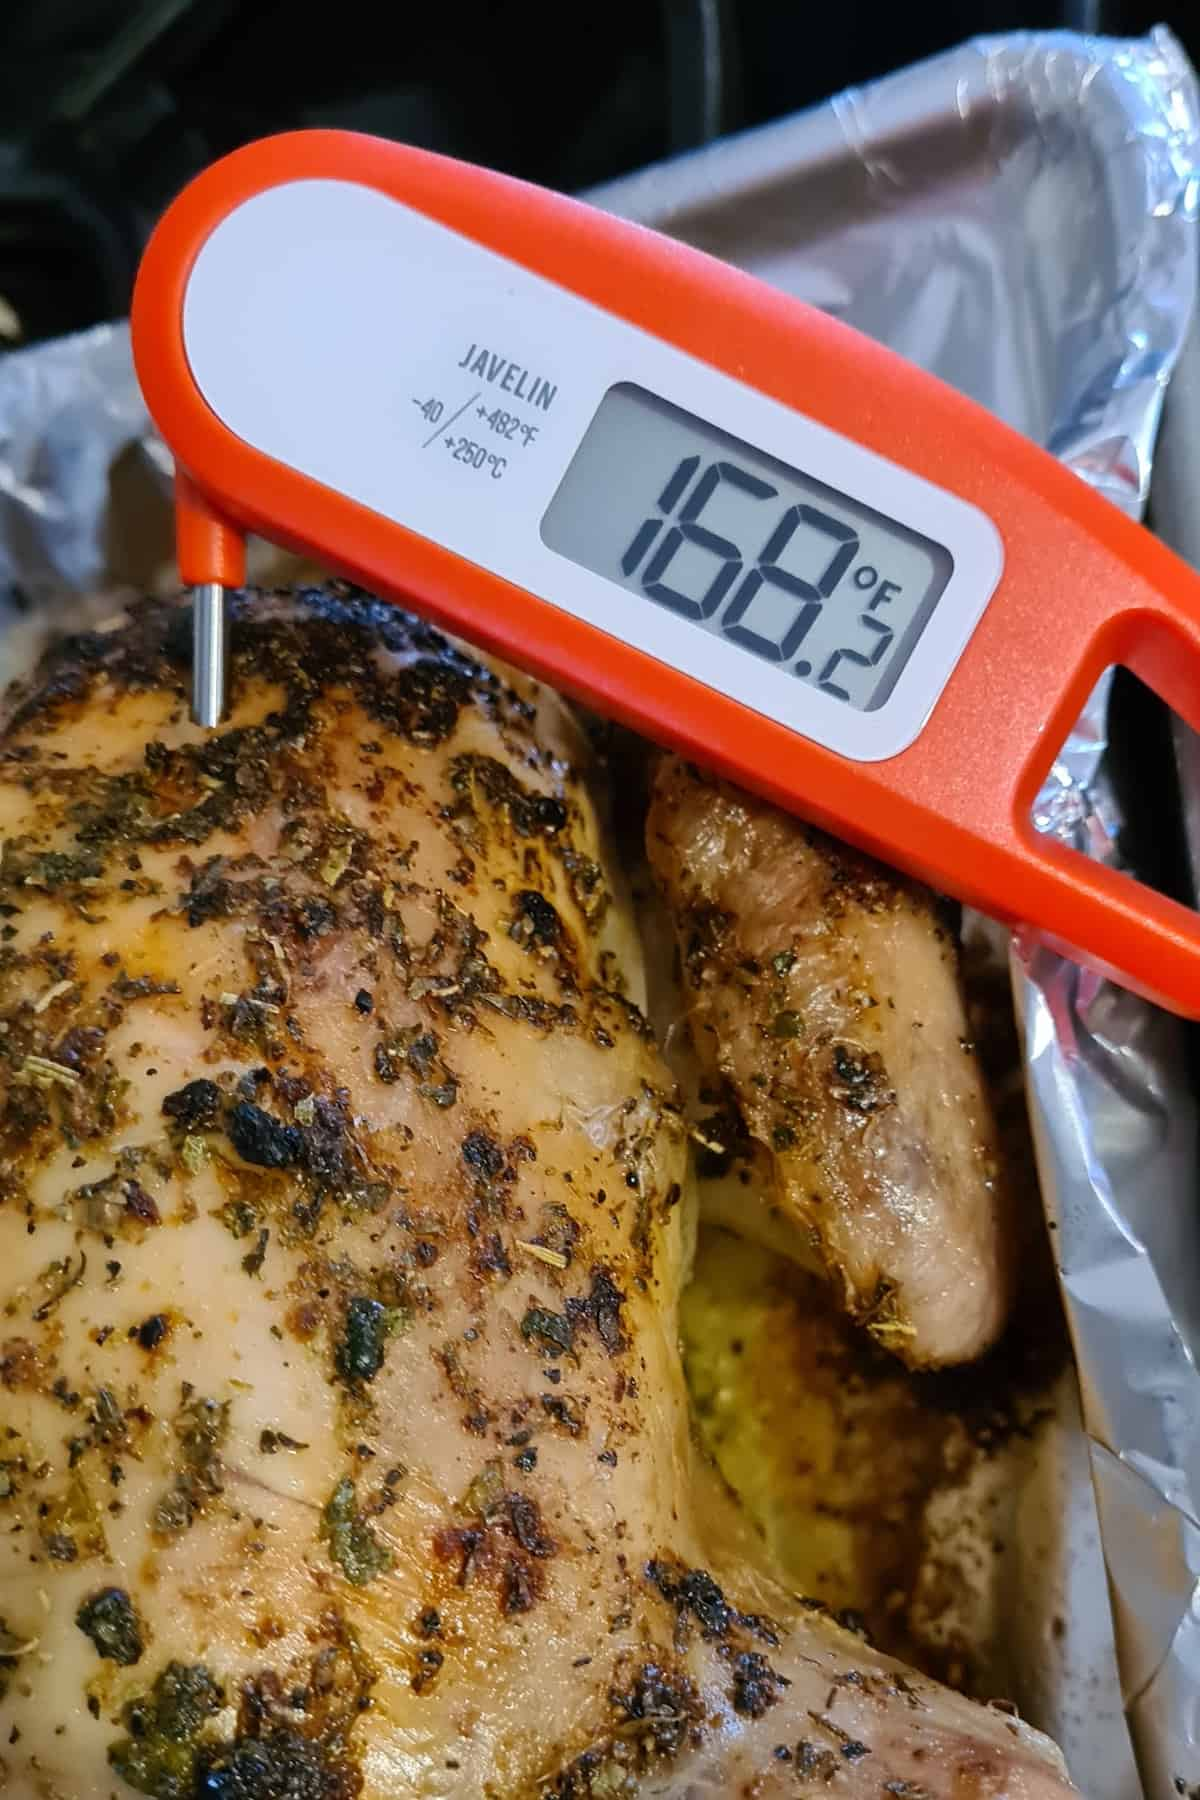 Close up view of the a meat thermometer inserted into a roast chicken that has reached the correct internal temperature